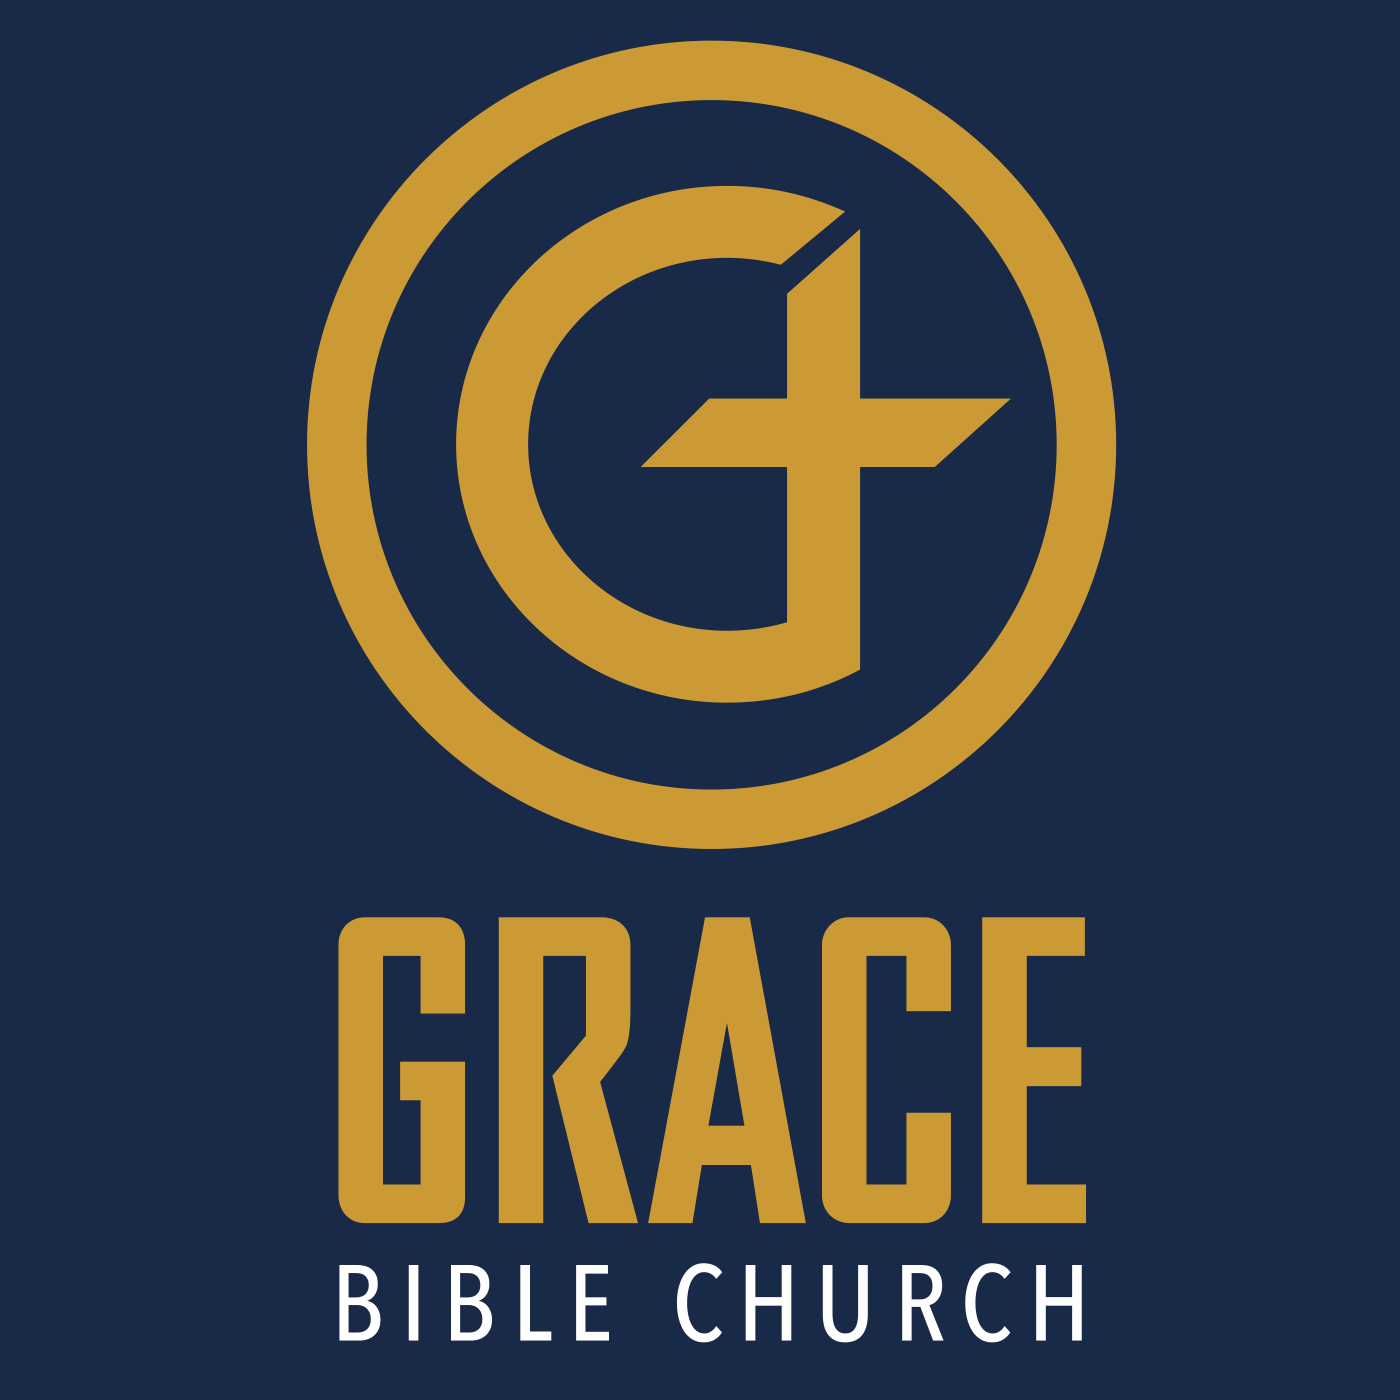 Grace Bible Church of Oxford